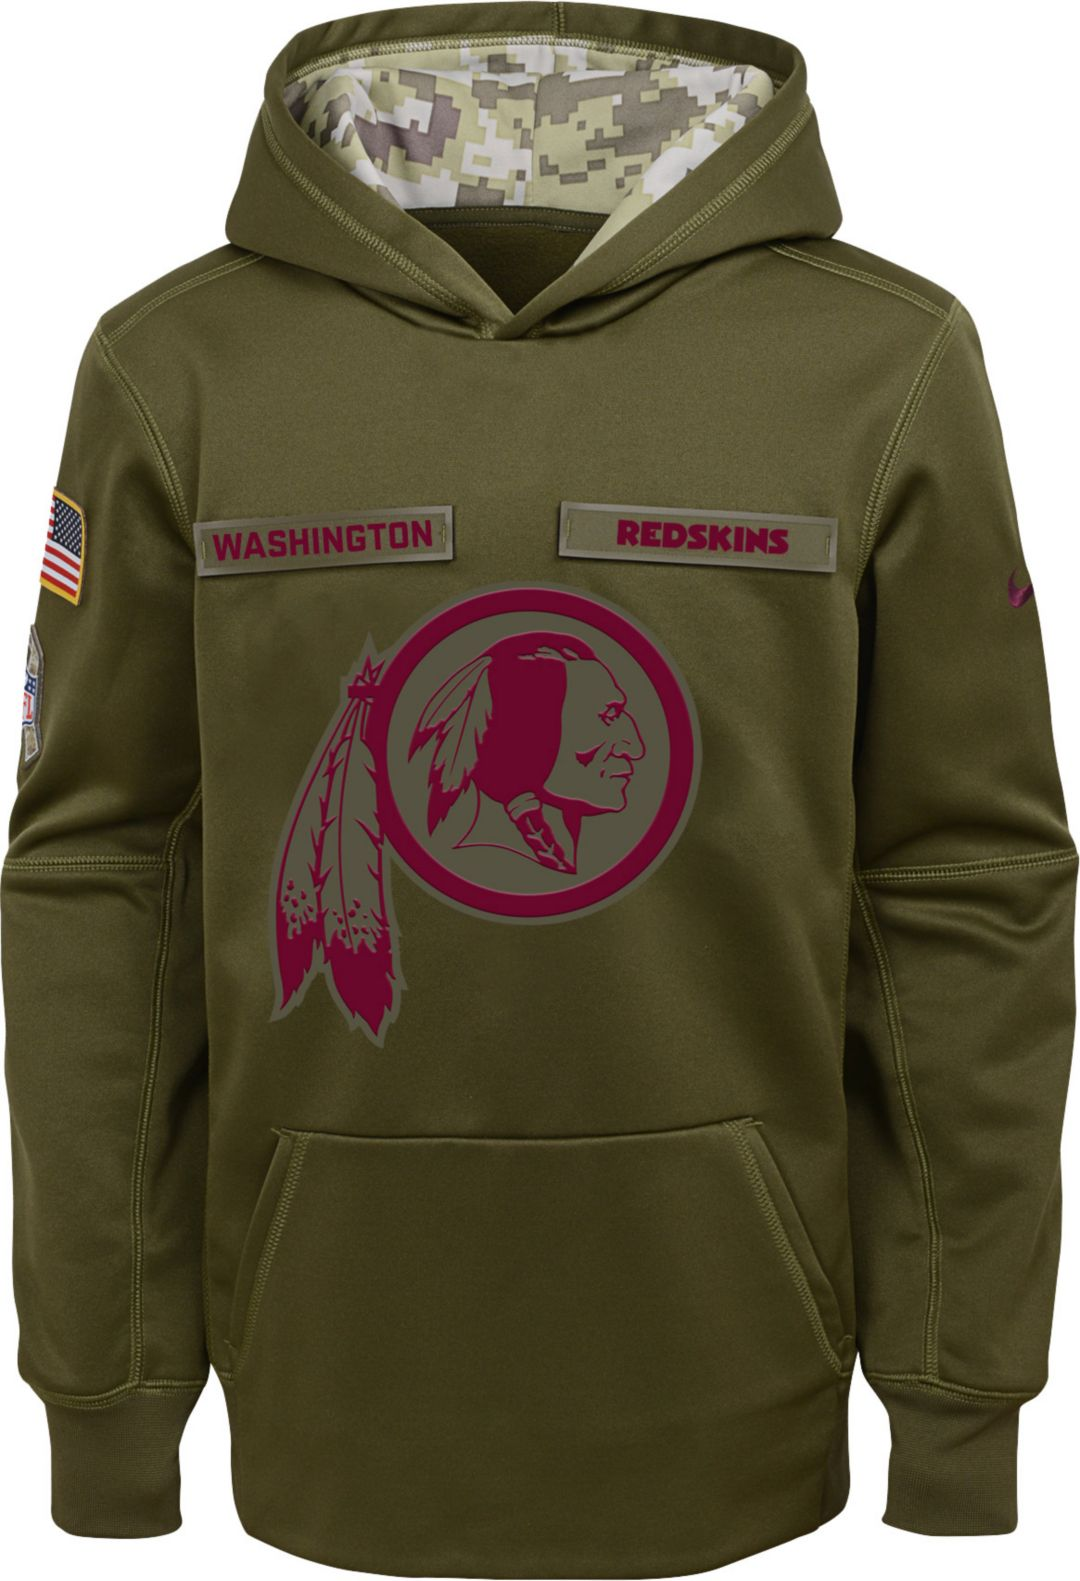 ac6e7147b82 Nike Youth Salute to Service Washington Redskins Therma-FIT Olive Performance  Hoodie 1